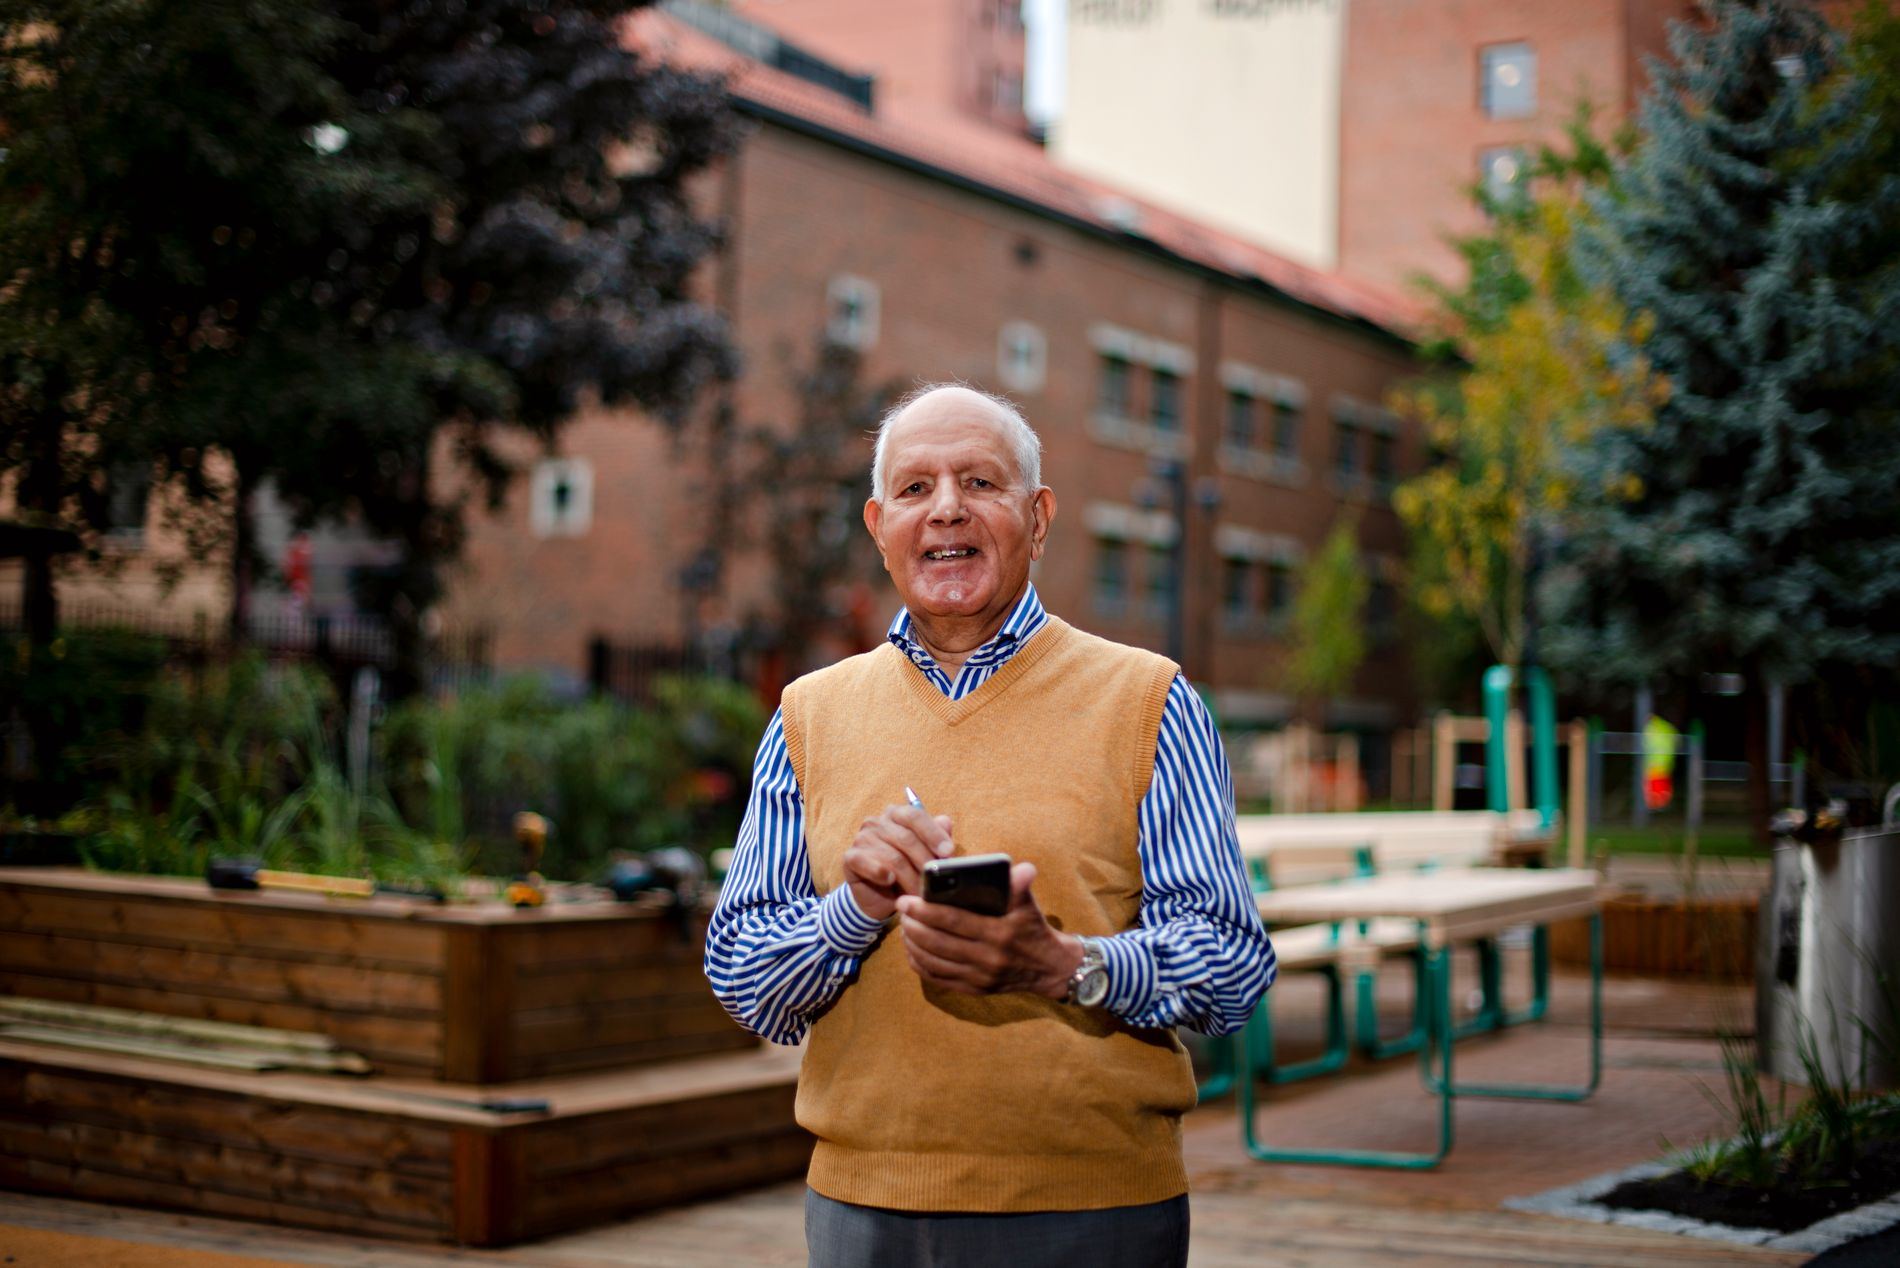 SOCIAL: Mohammed Islam (72) uses Messenger, What's App and SMS when talking to children and grandchildren.